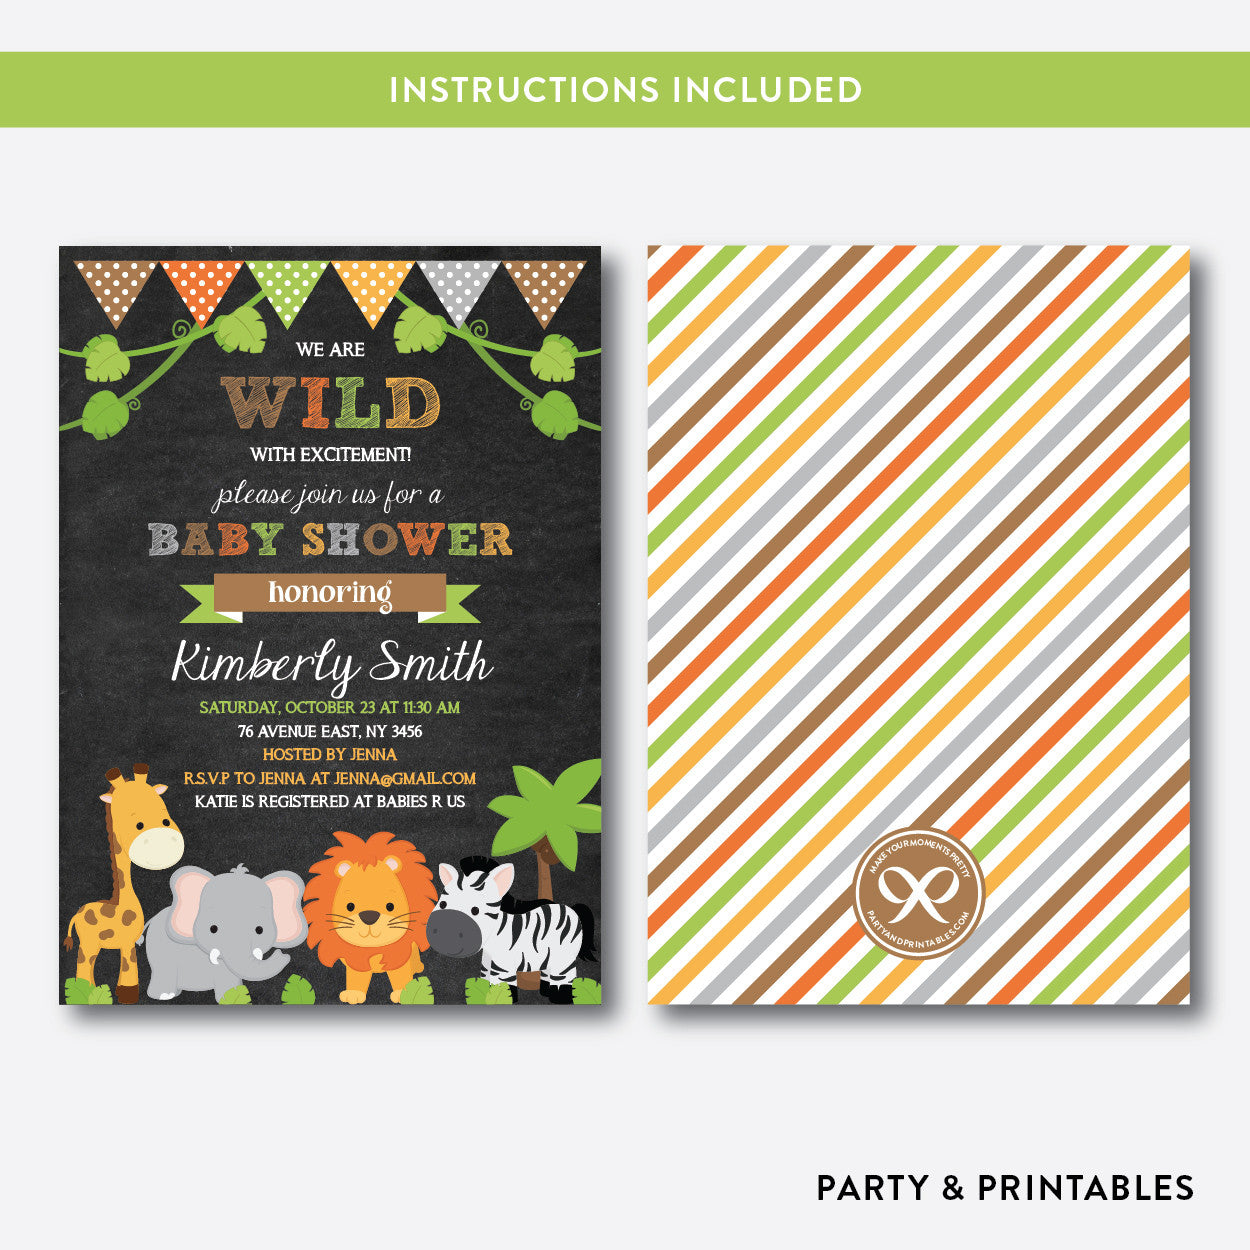 Wild Safari Chalkboard Baby Shower Invitation / Editable / Instant Download (CBS.42), invitation - Party and Printables